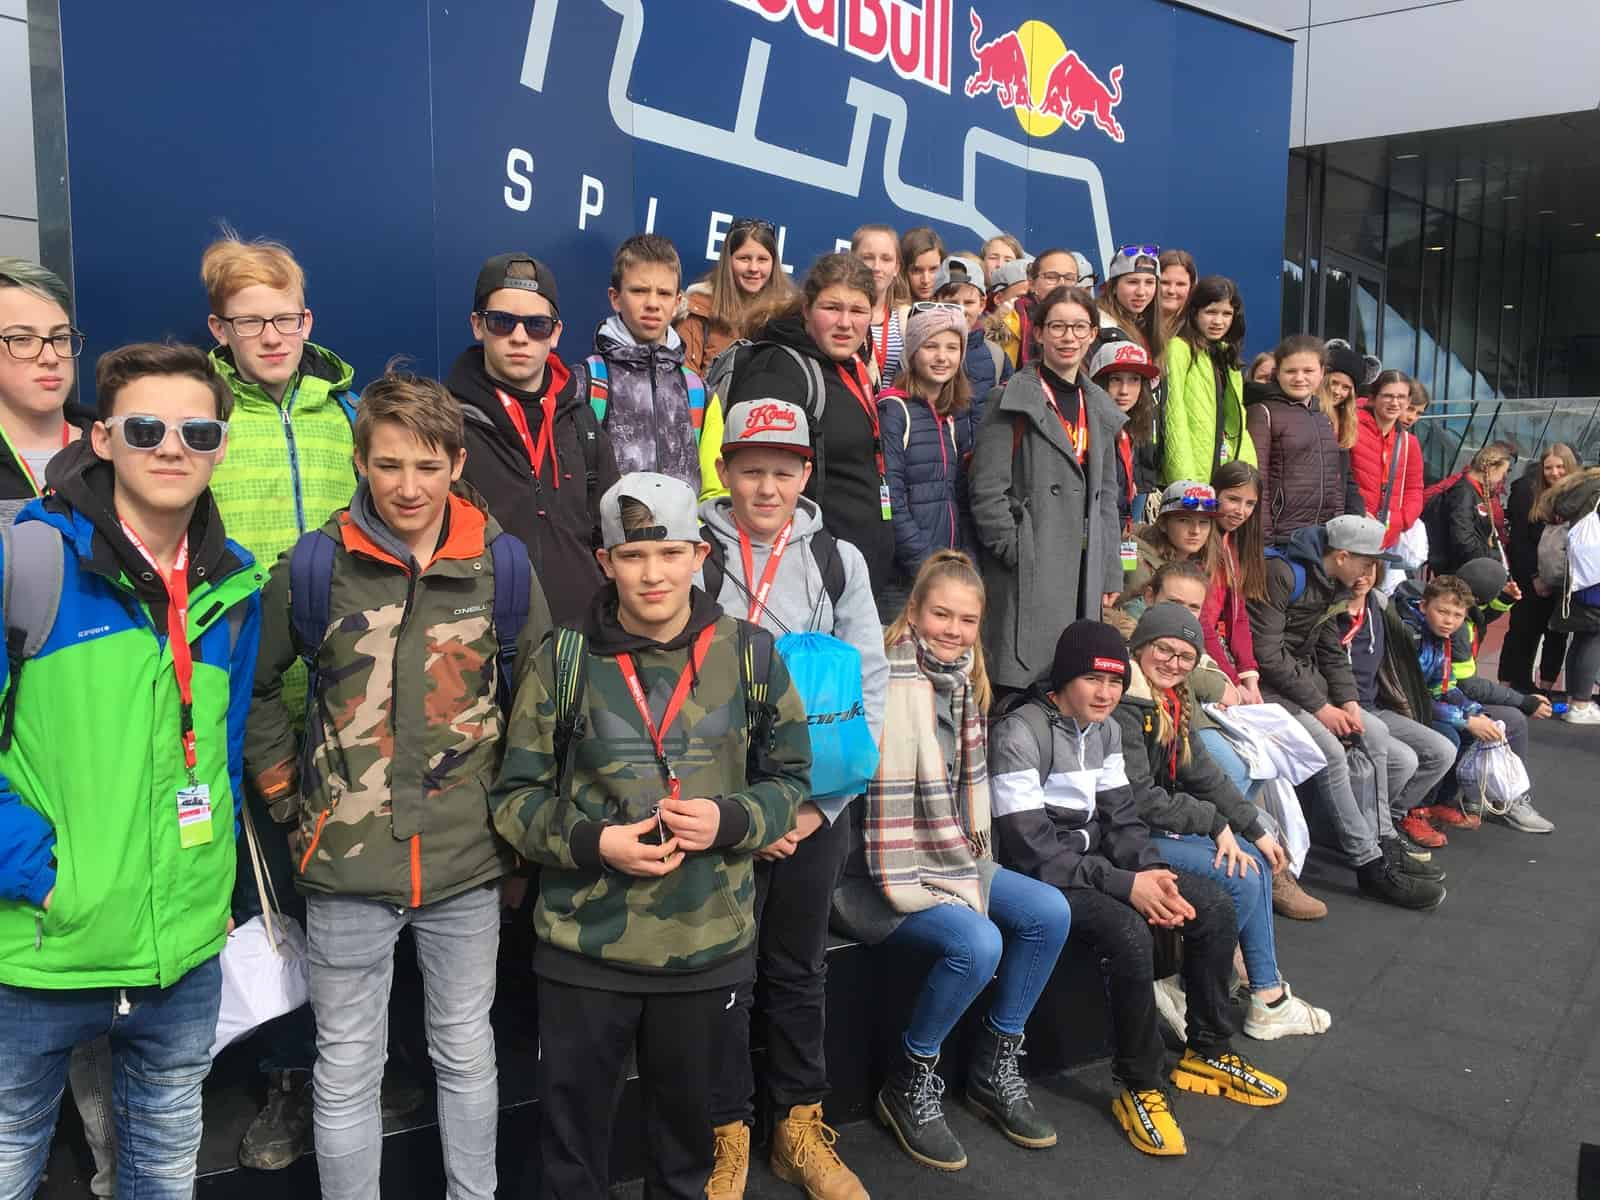 JobTech 2020<br /><h3 style='font-size: 16px; line-height: 16px !important; margin-top: 5px;'><span style='color: #800000;'>Berufsinformation am Red Bull Ring</span></h3>